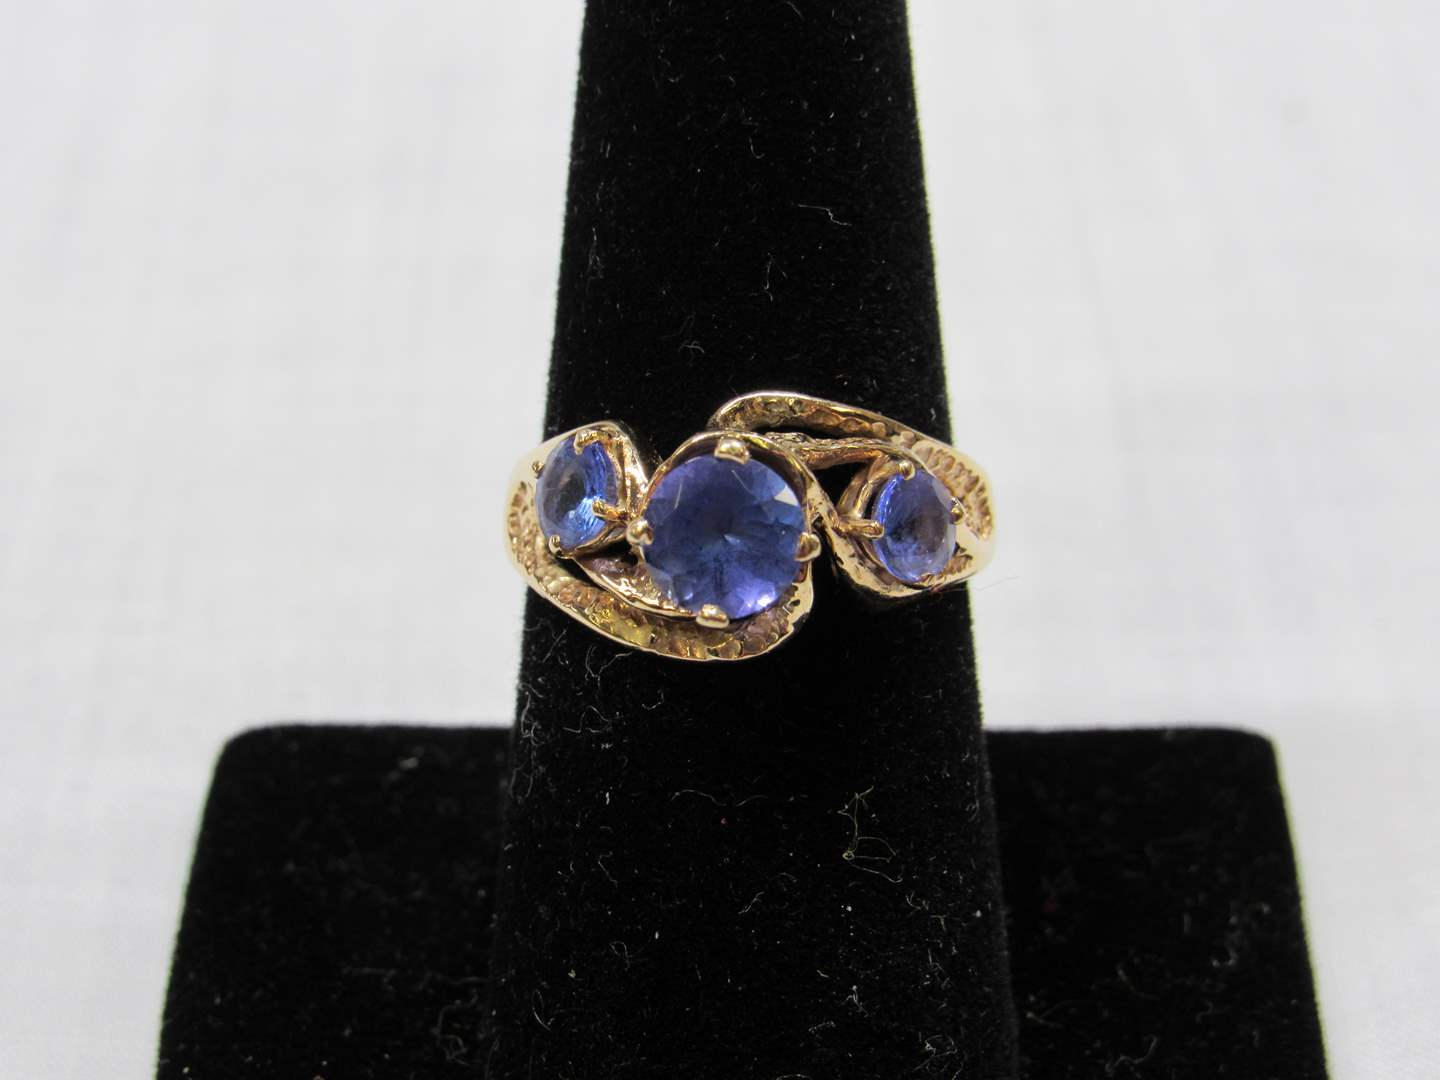 Lot # 106  Beautiful blue stone 14K gold size 7 1/2 ring 5.20 grams (main image)